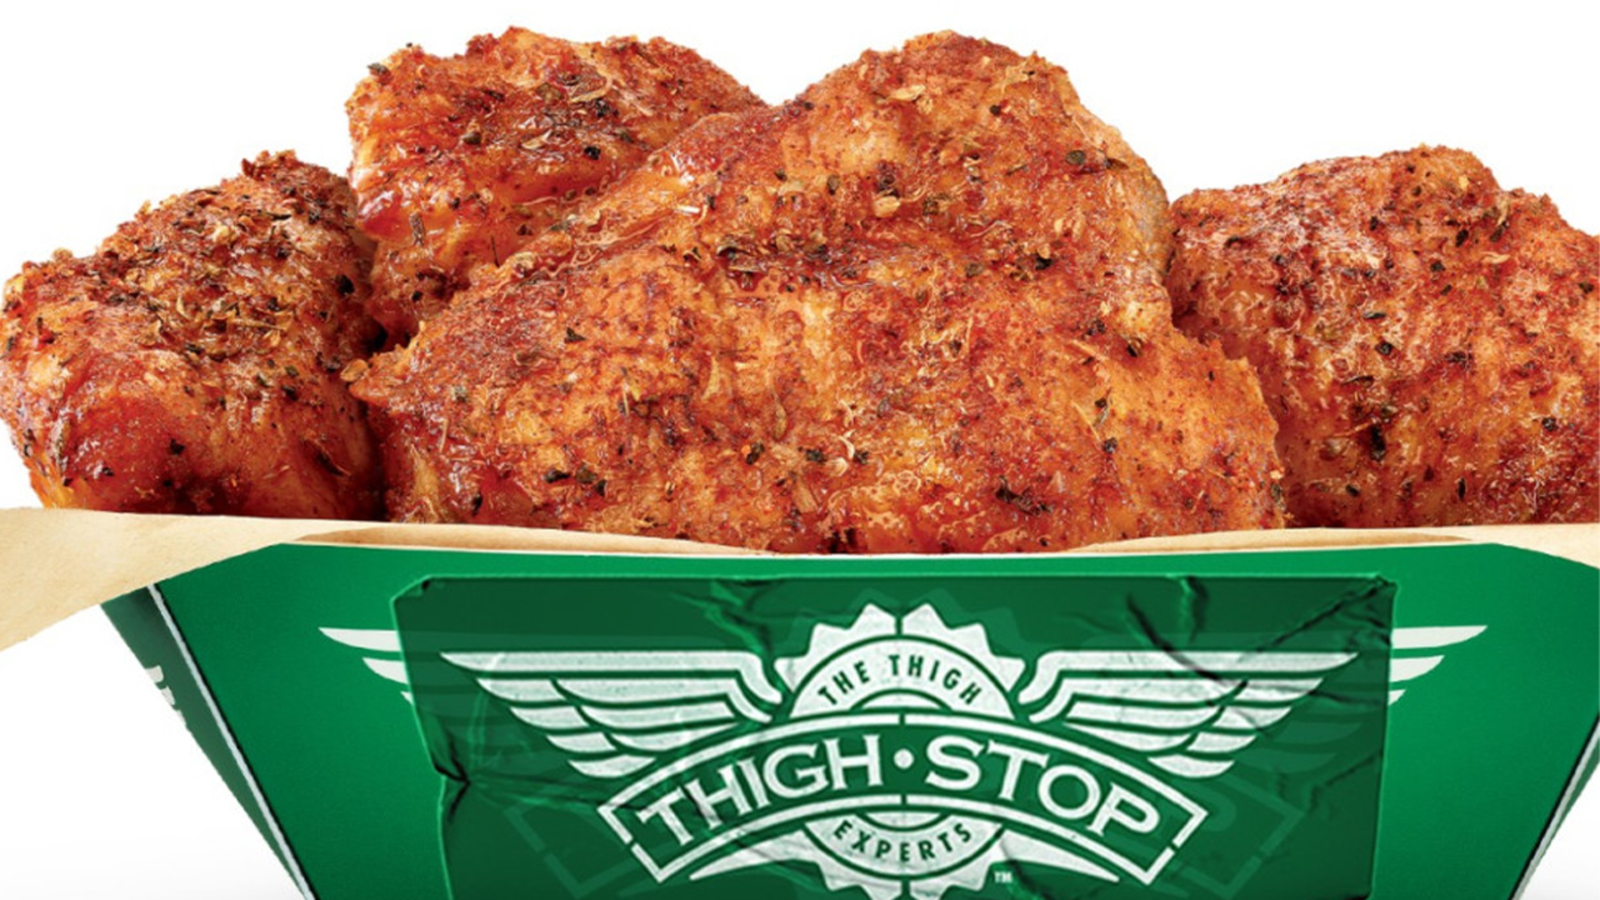 Texas-based Wingstop launches new concept, Thighstop, offering juicy  chicken thighs on its menu - ABC13 Houston